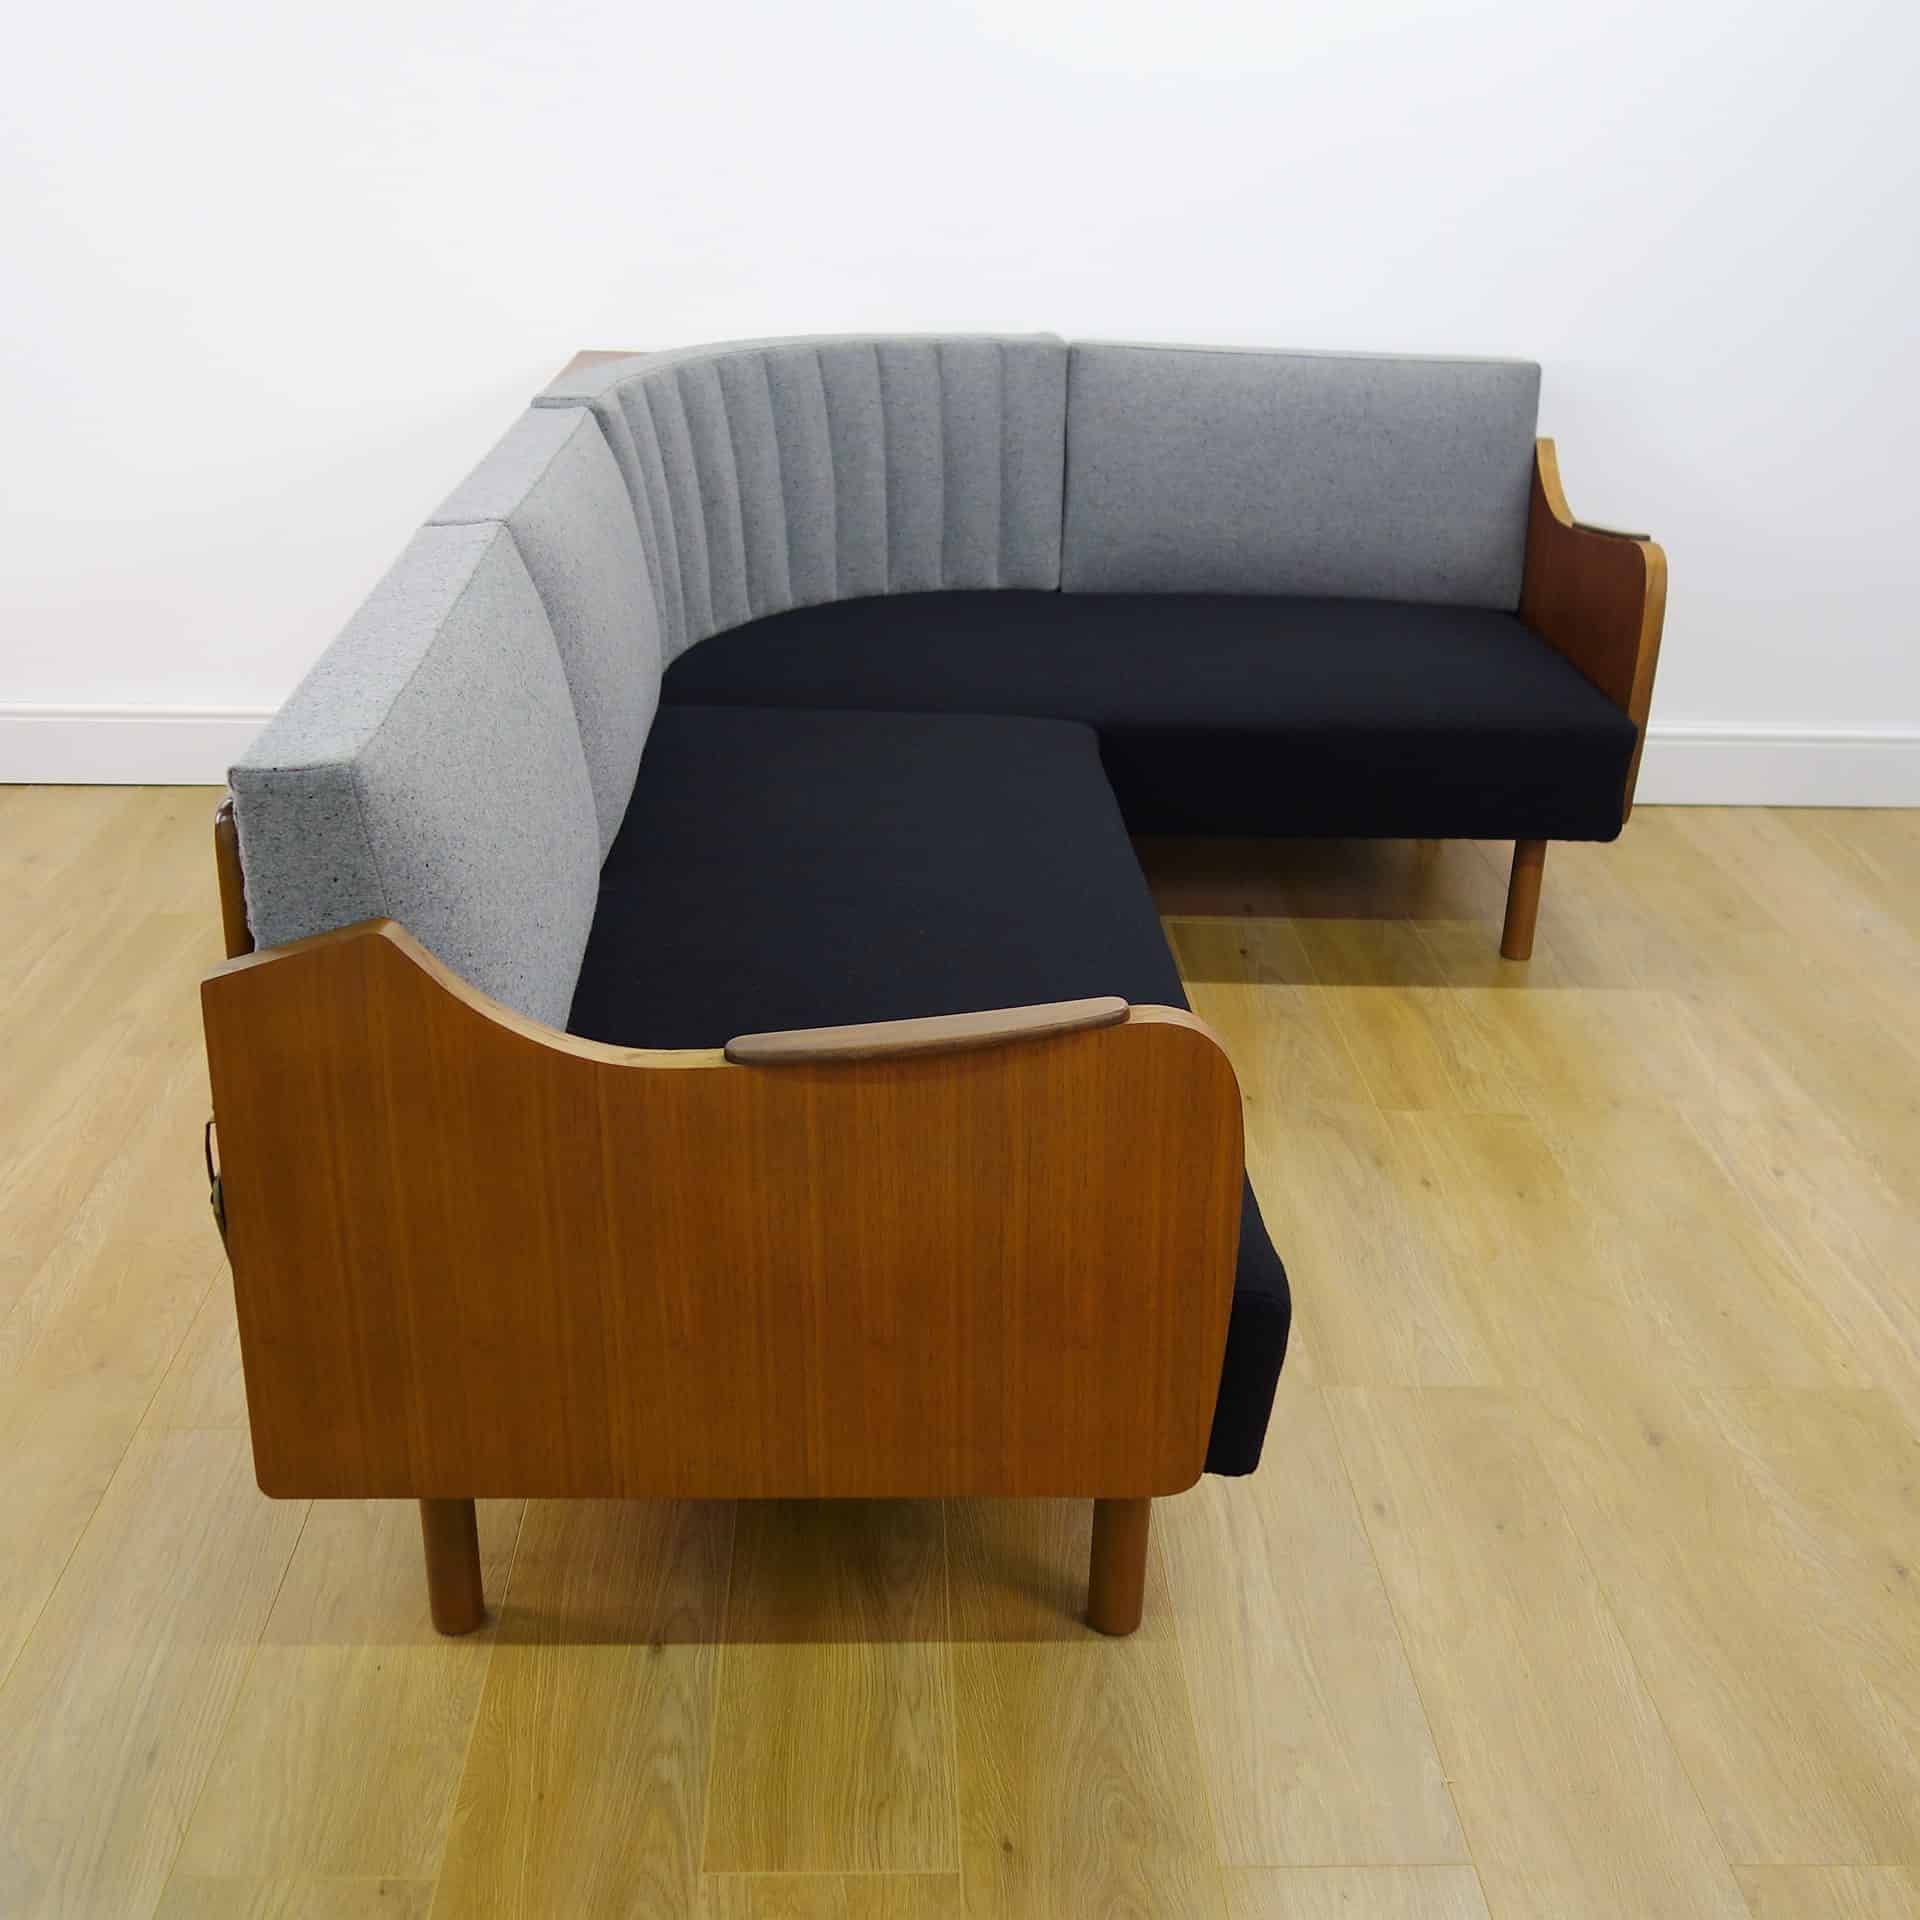 danish style sofa bed uk leather or fabric which is better 1960s teak corner day mark parrish mid